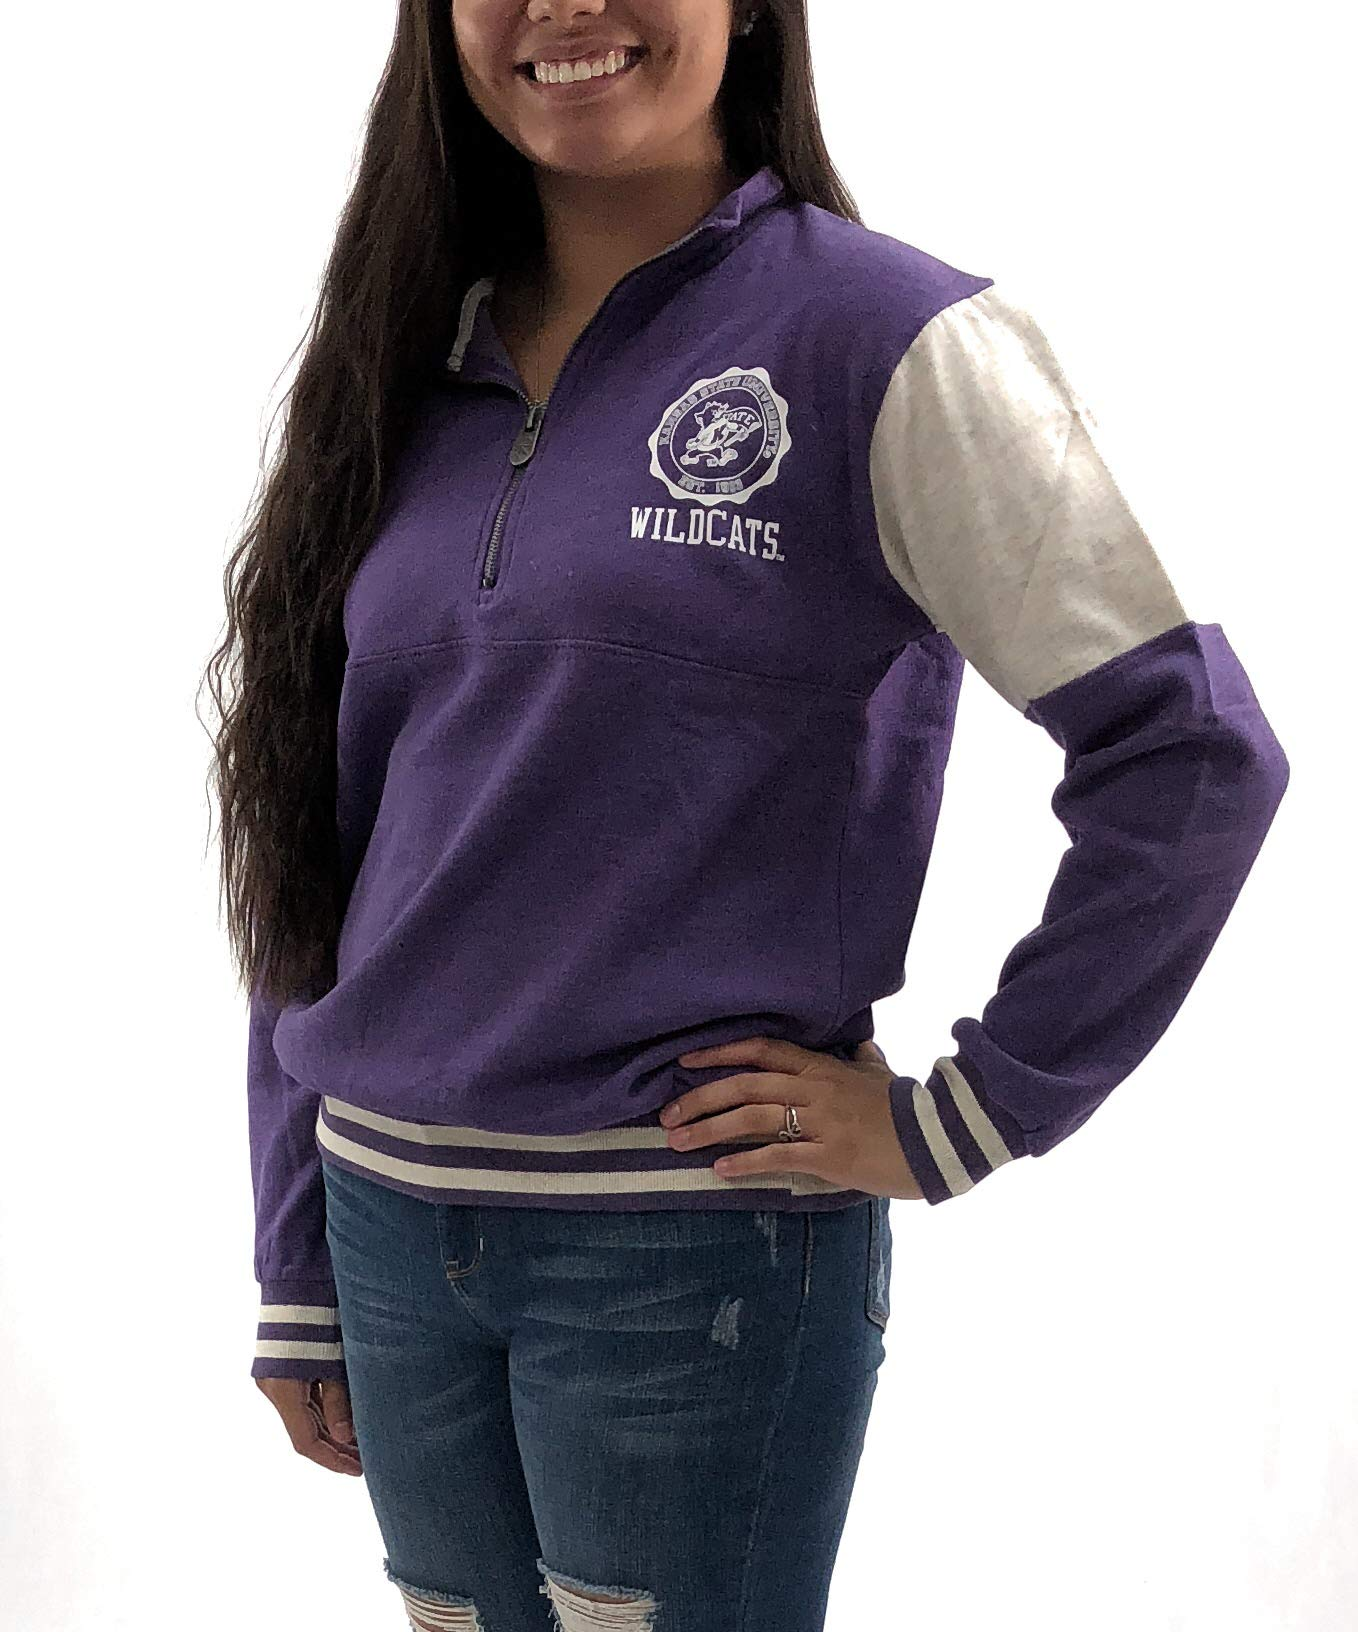 University Kansas State Wildcats Womens 1/4 Zip Jacket; Pullover University Apparel Clothing